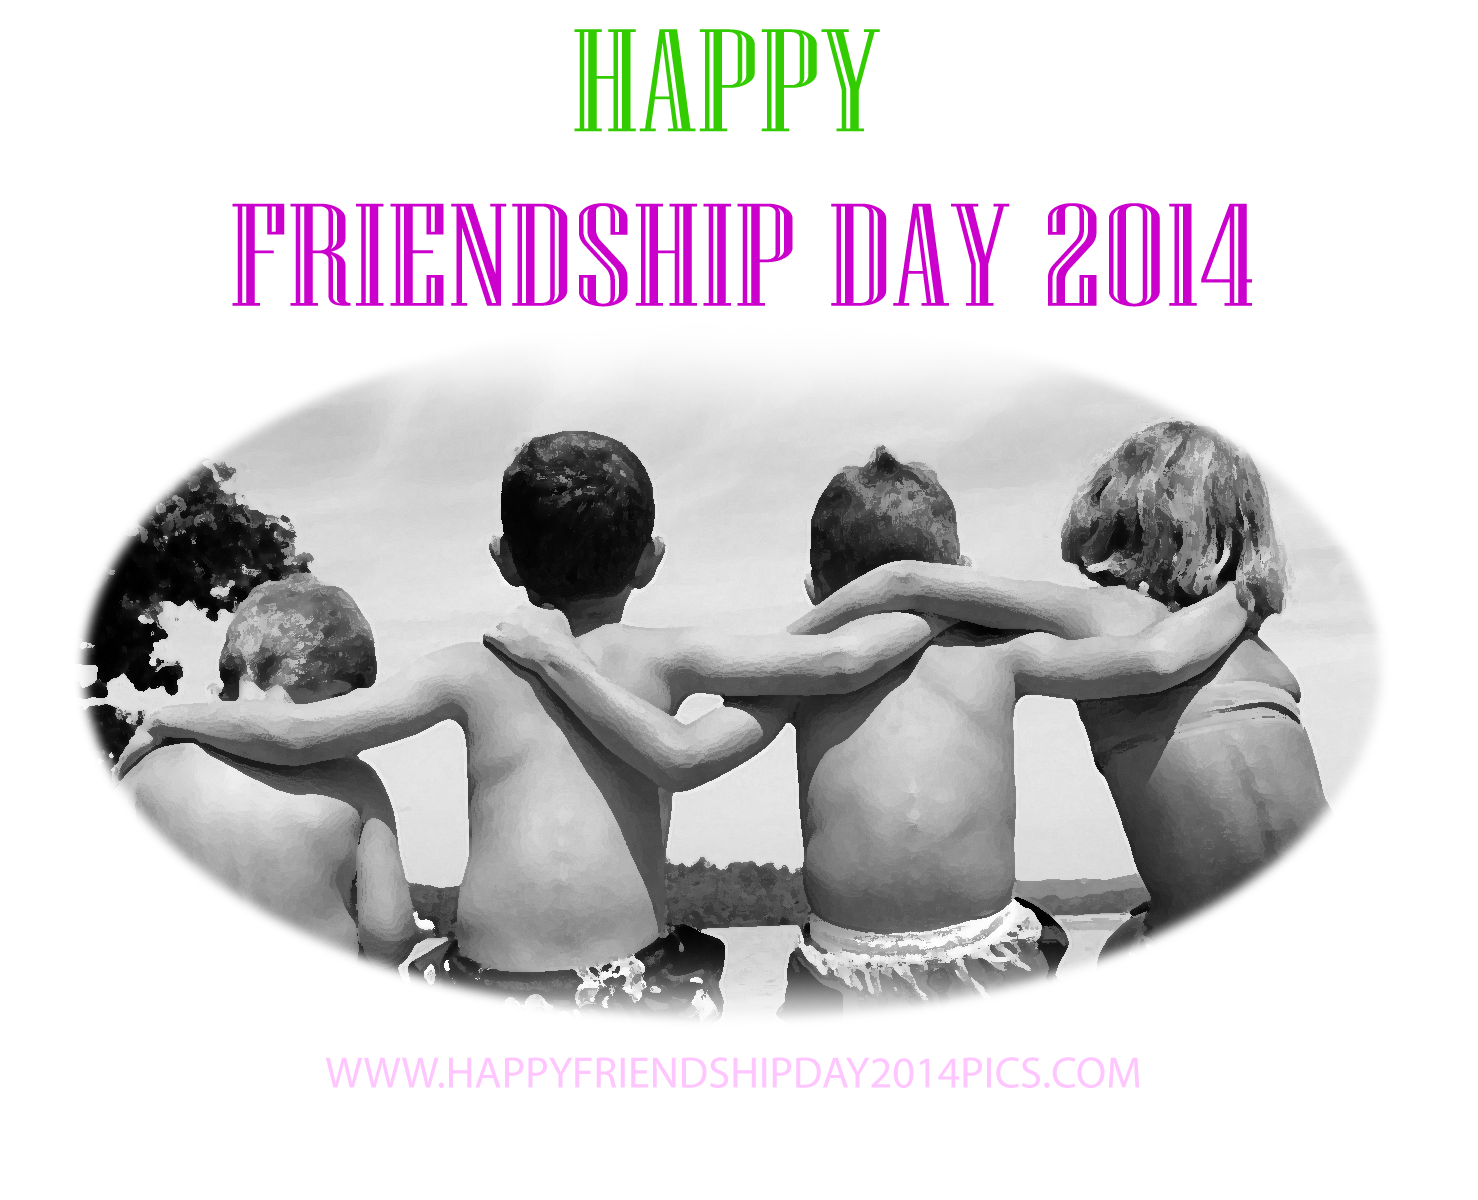 Download-Free-Happy-Friendship-Day-2014-pictures